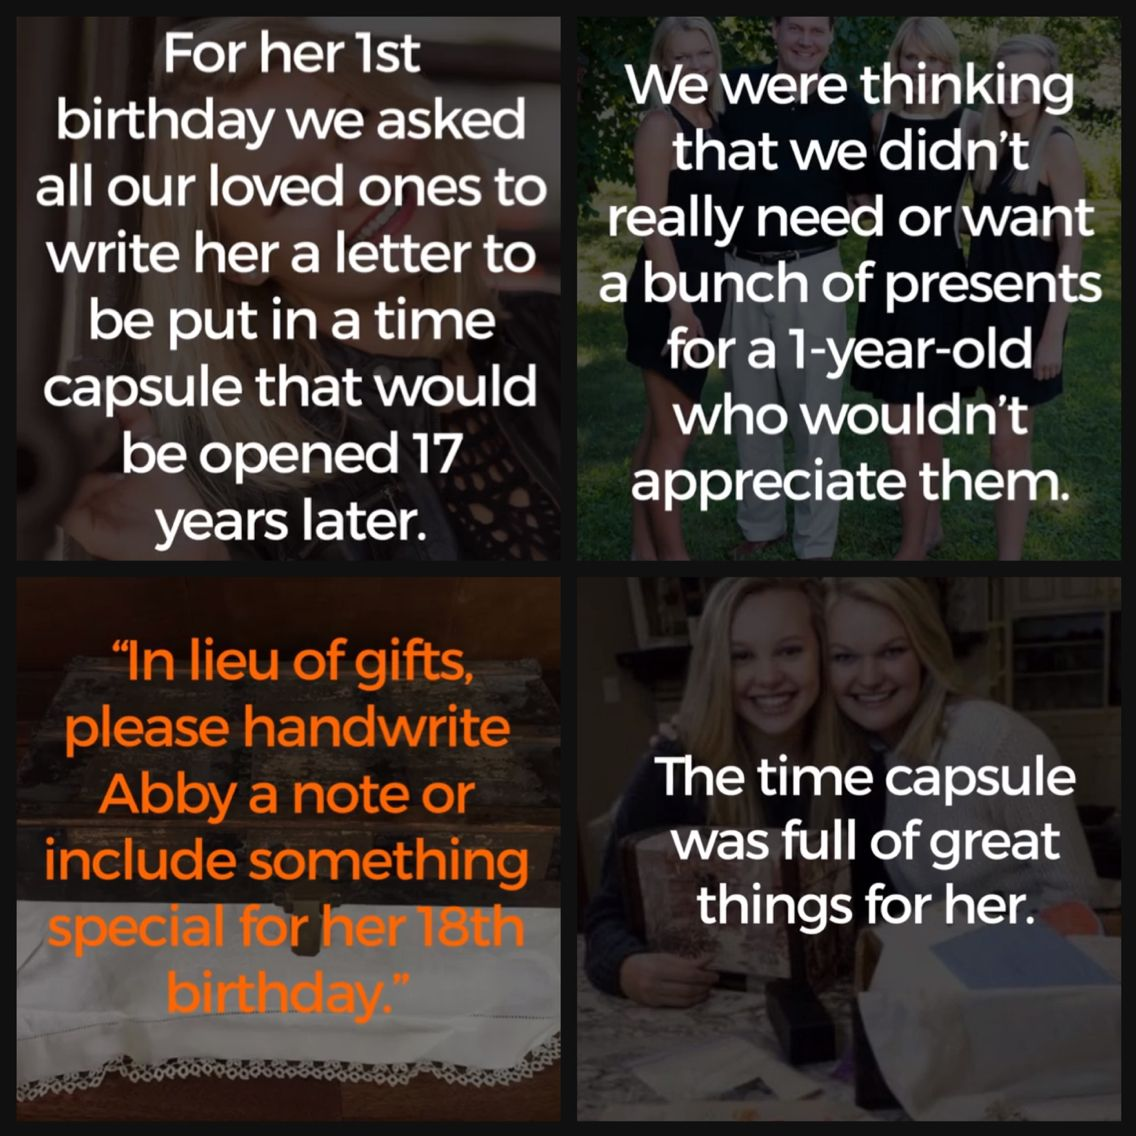 Create A Time Capsule At Their 1st Birthday, And Then Gift